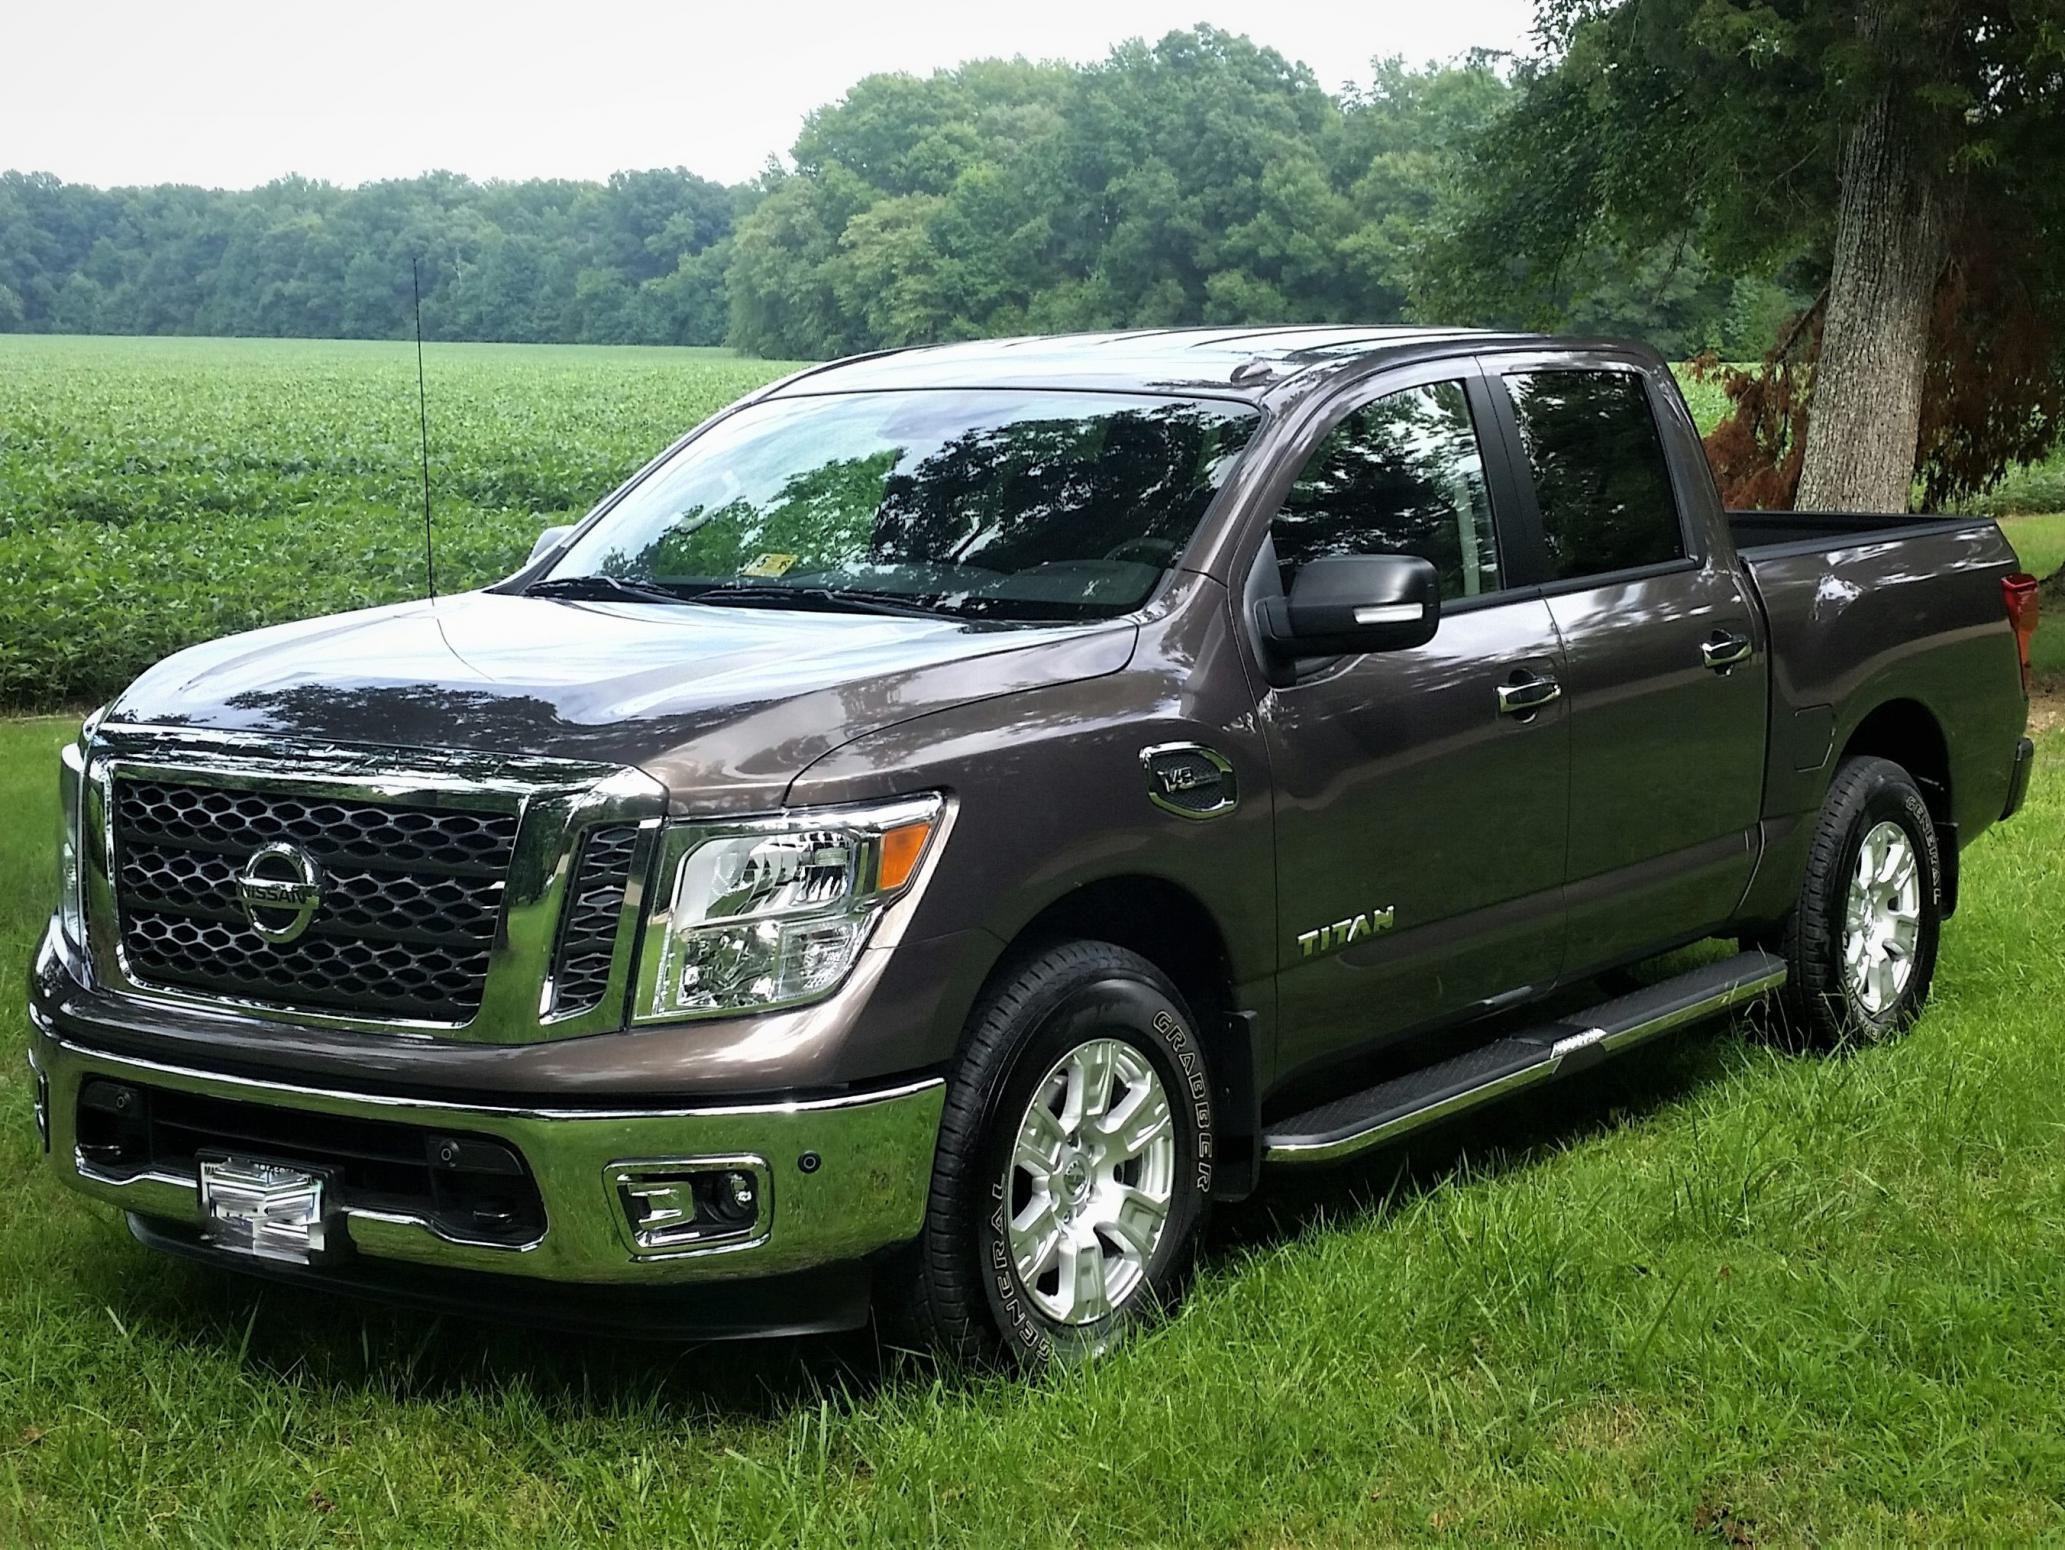 2017 titan sv crew cab 4x4 what i love hate page 3 nissan titan forum. Black Bedroom Furniture Sets. Home Design Ideas